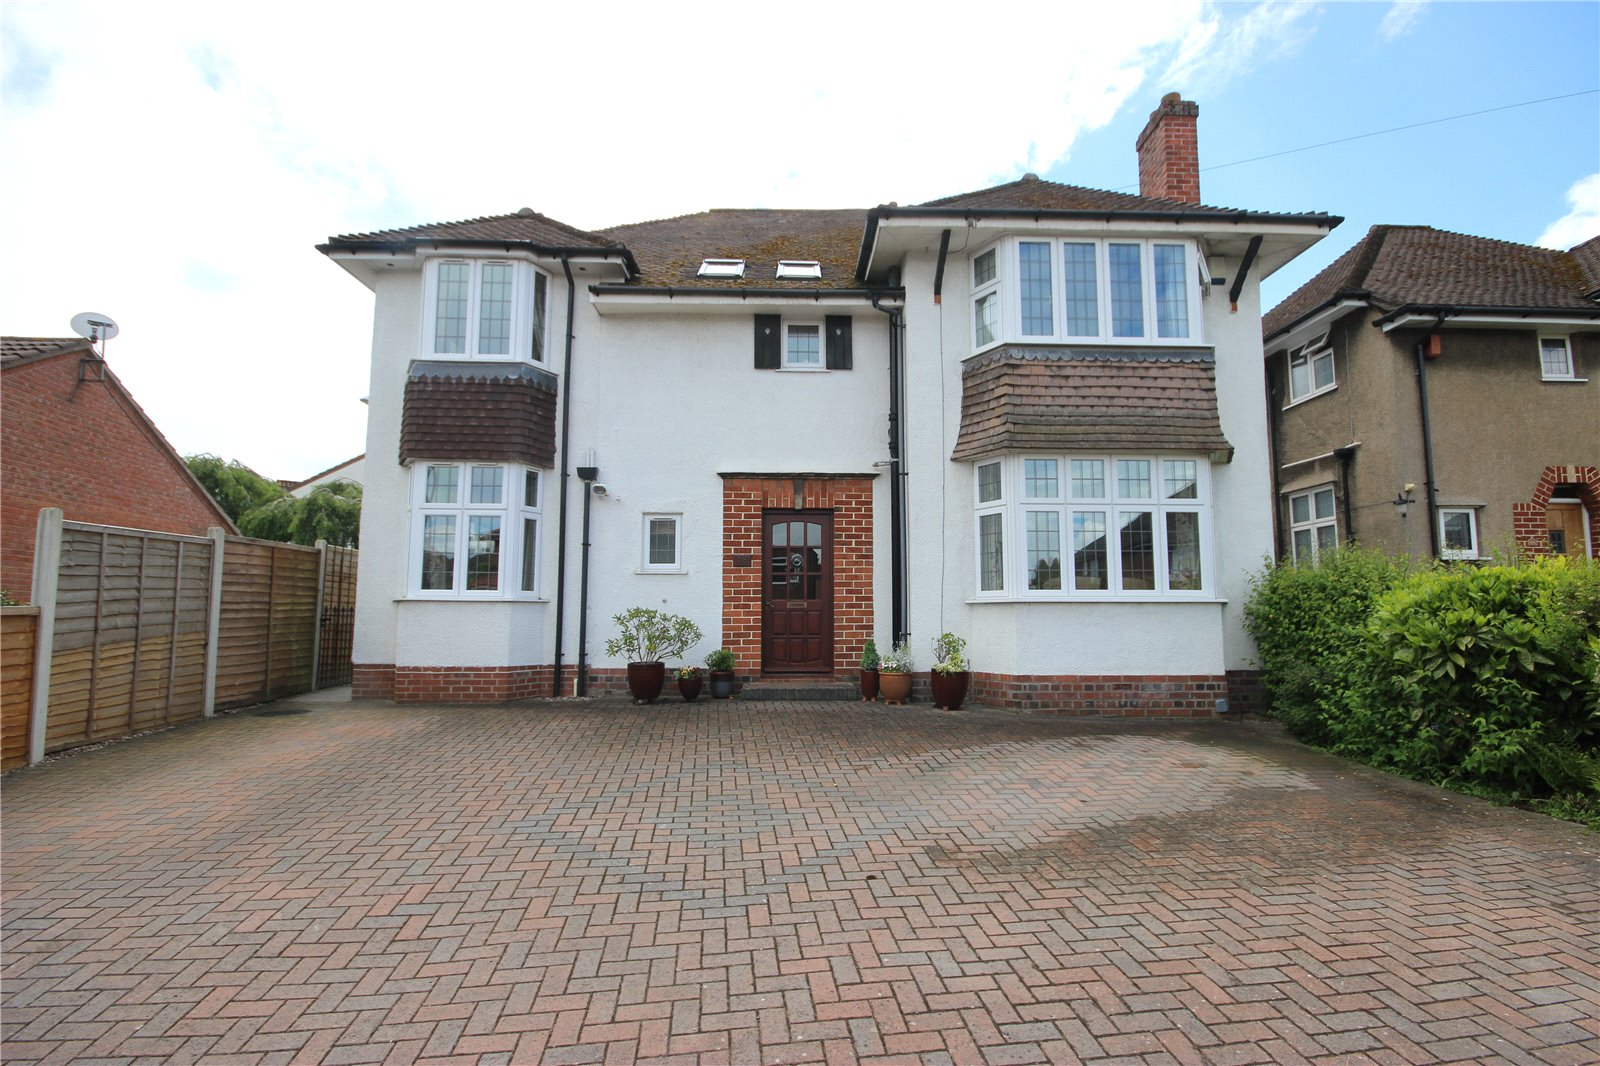 Cj hole westbury on trym 5 bedroom house for sale in for 9 bedroom homes for sale